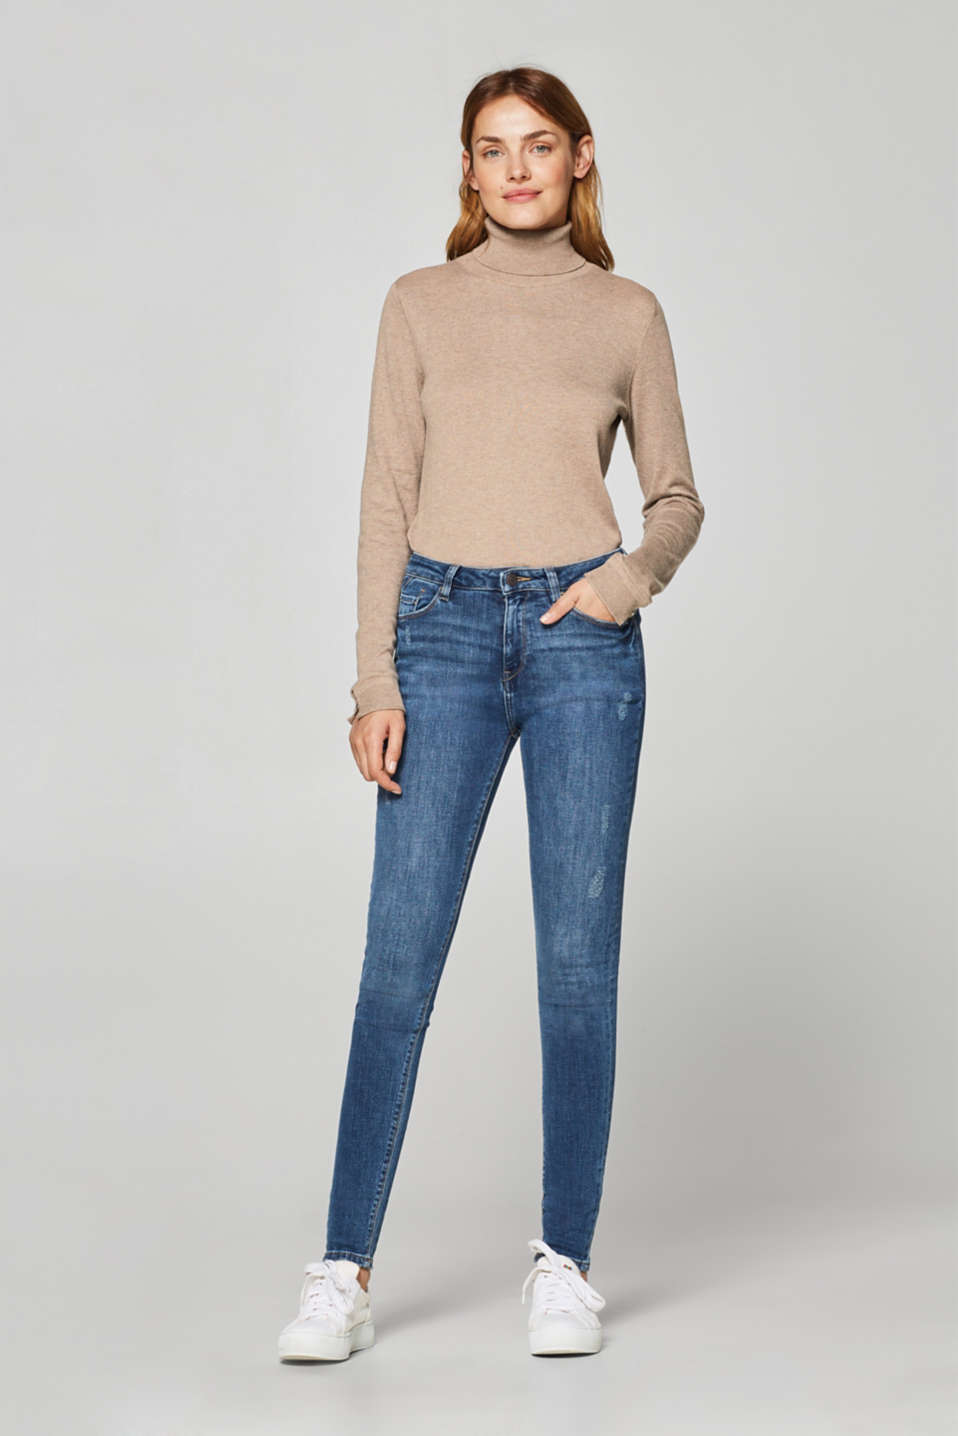 Esprit - Stretch jeans in a subtle vintage finish